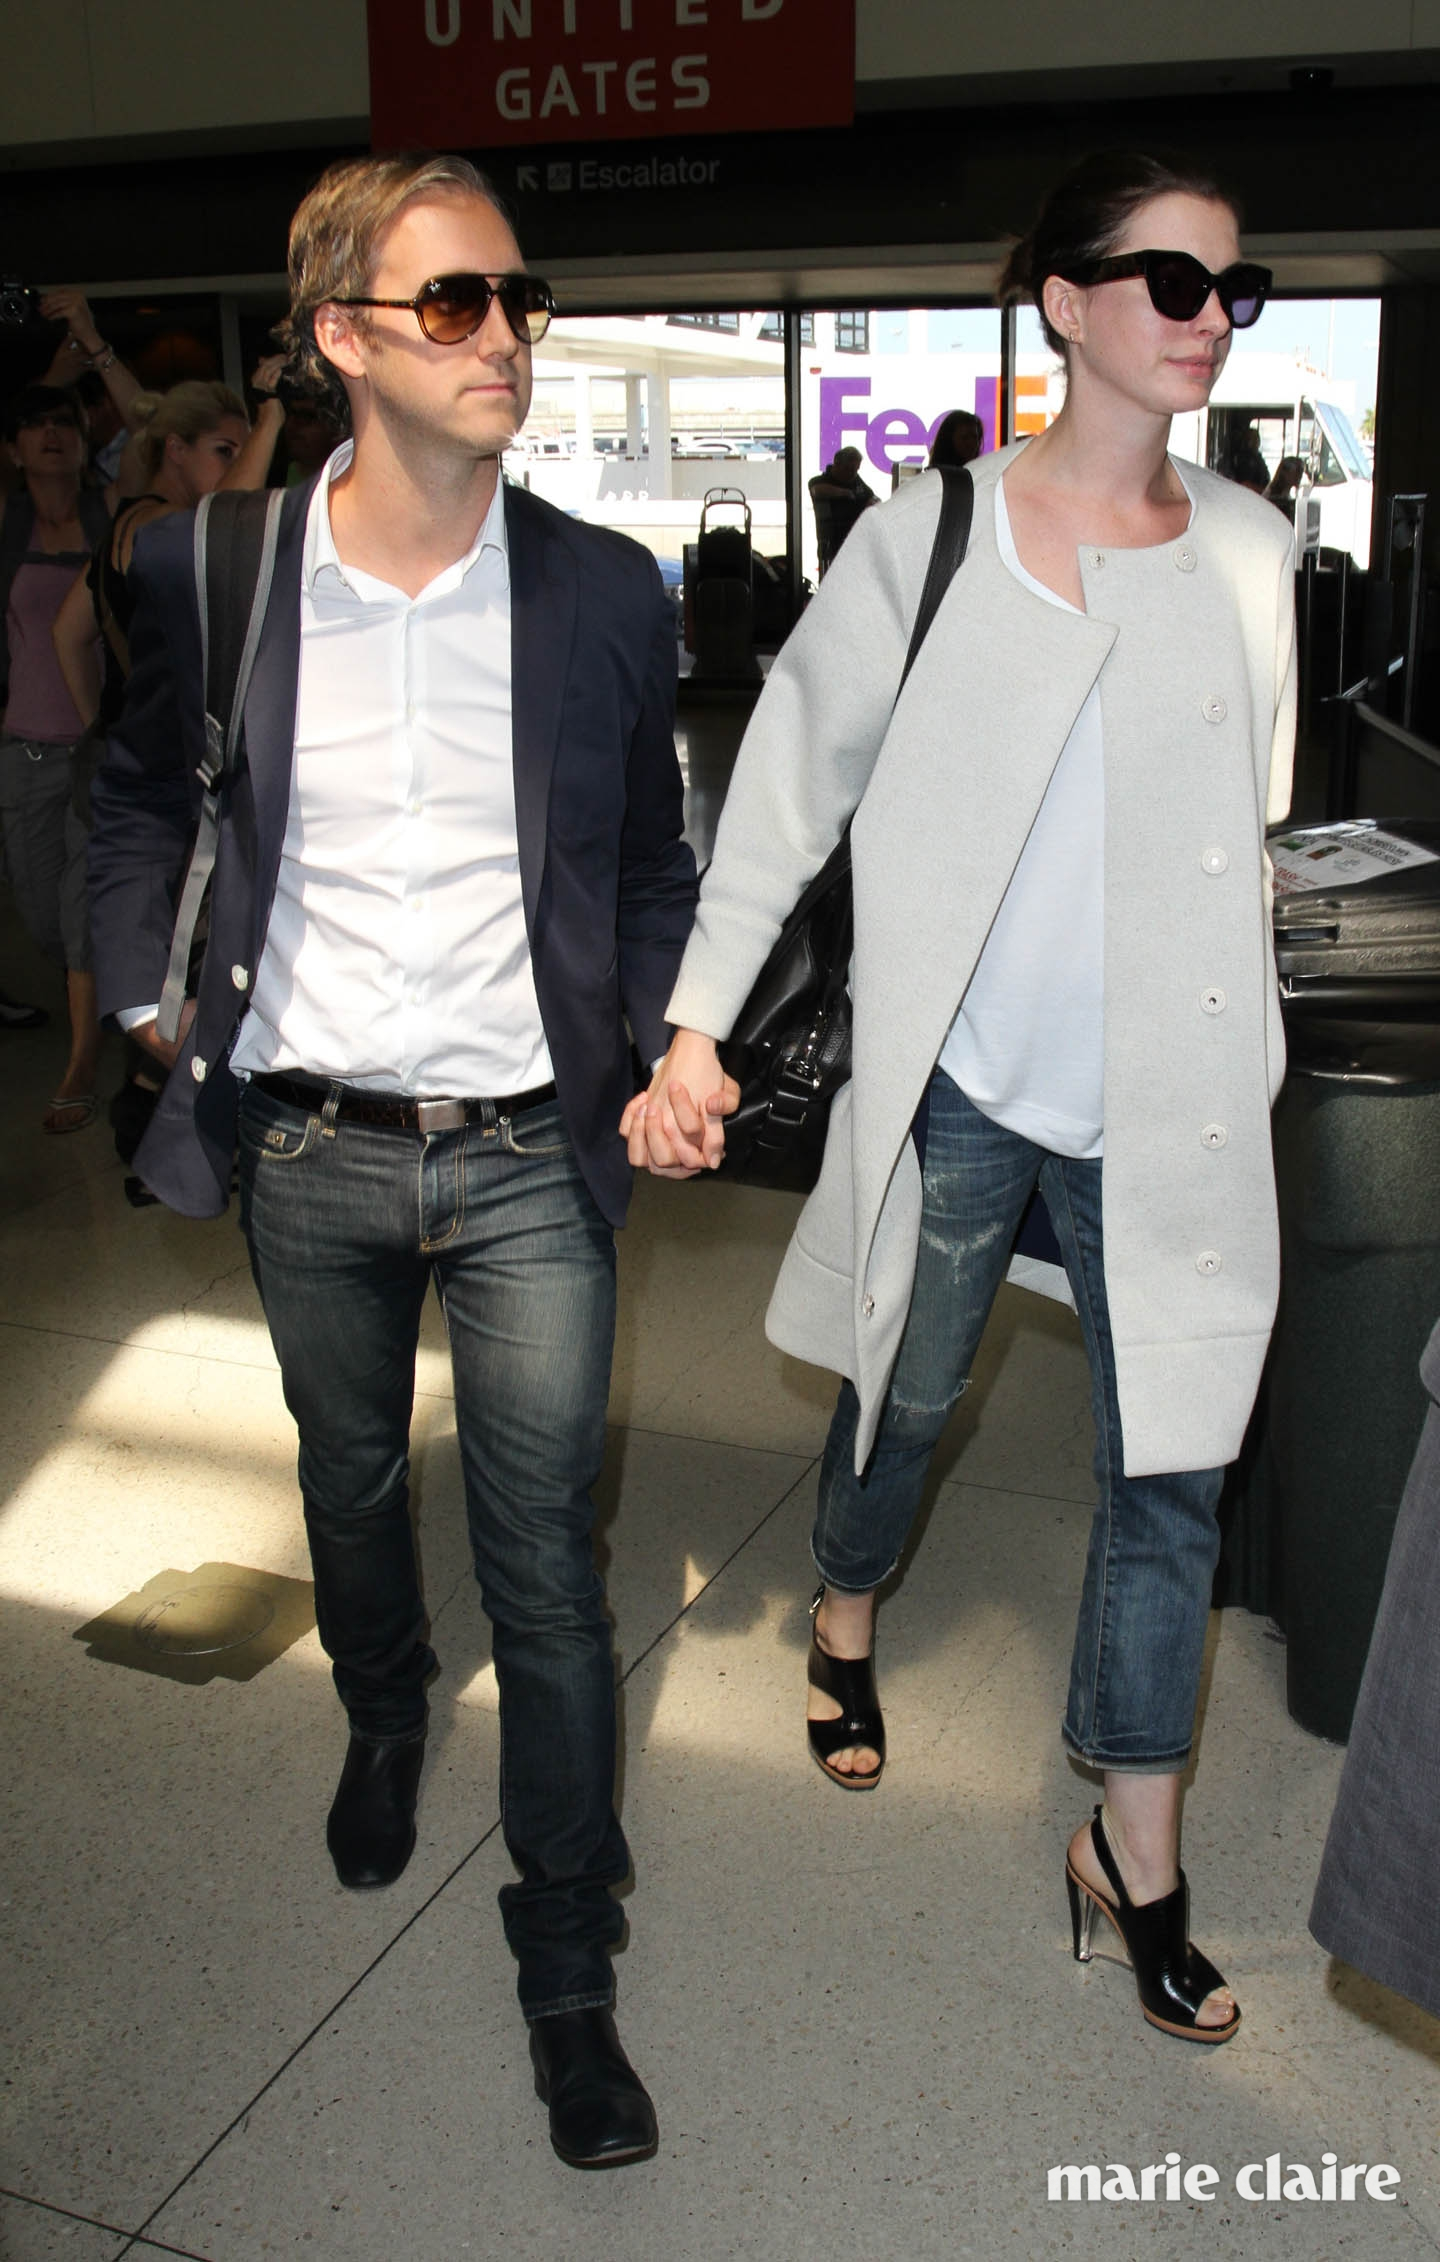 Anne Hathaway arrives at Los Angeles International Airport with her husband Adam Shulman to catch a flight Featuring: Anne Hathaway, Adam Shulman Where: Los Angeles, California, United States When: 17 Sep 2015 Credit: WENN.com